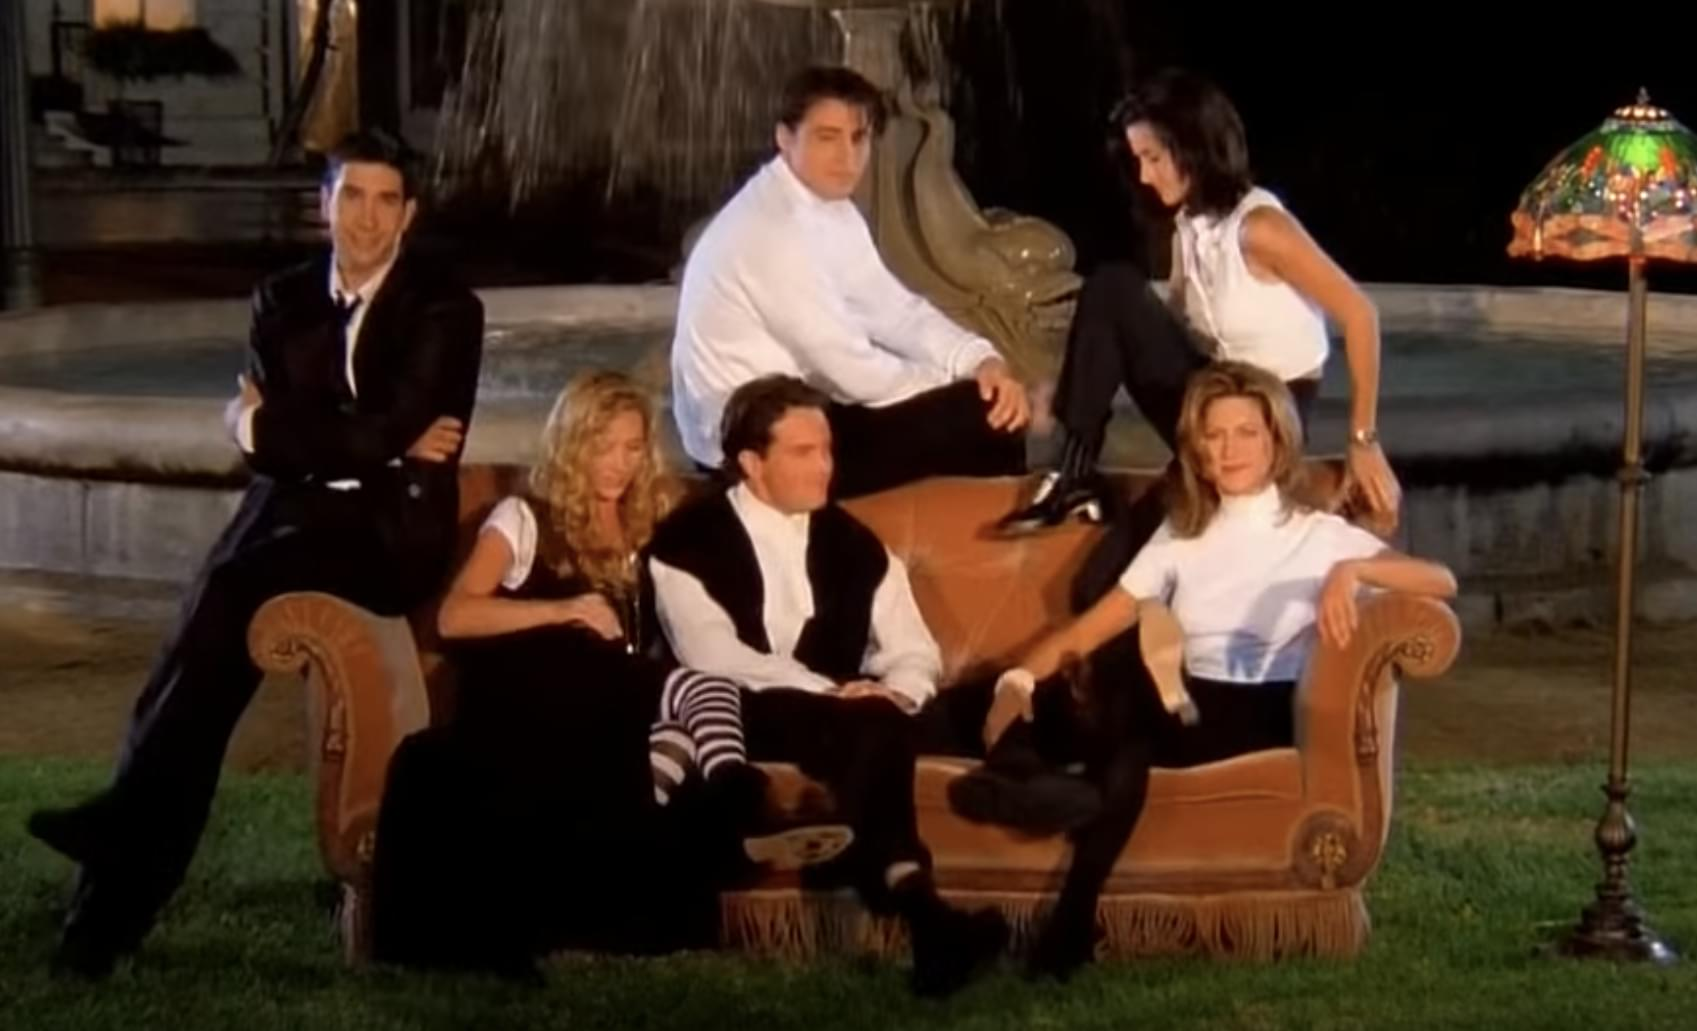 """Friends"" Reunion Special in the Works with the ENTIRE CAST"